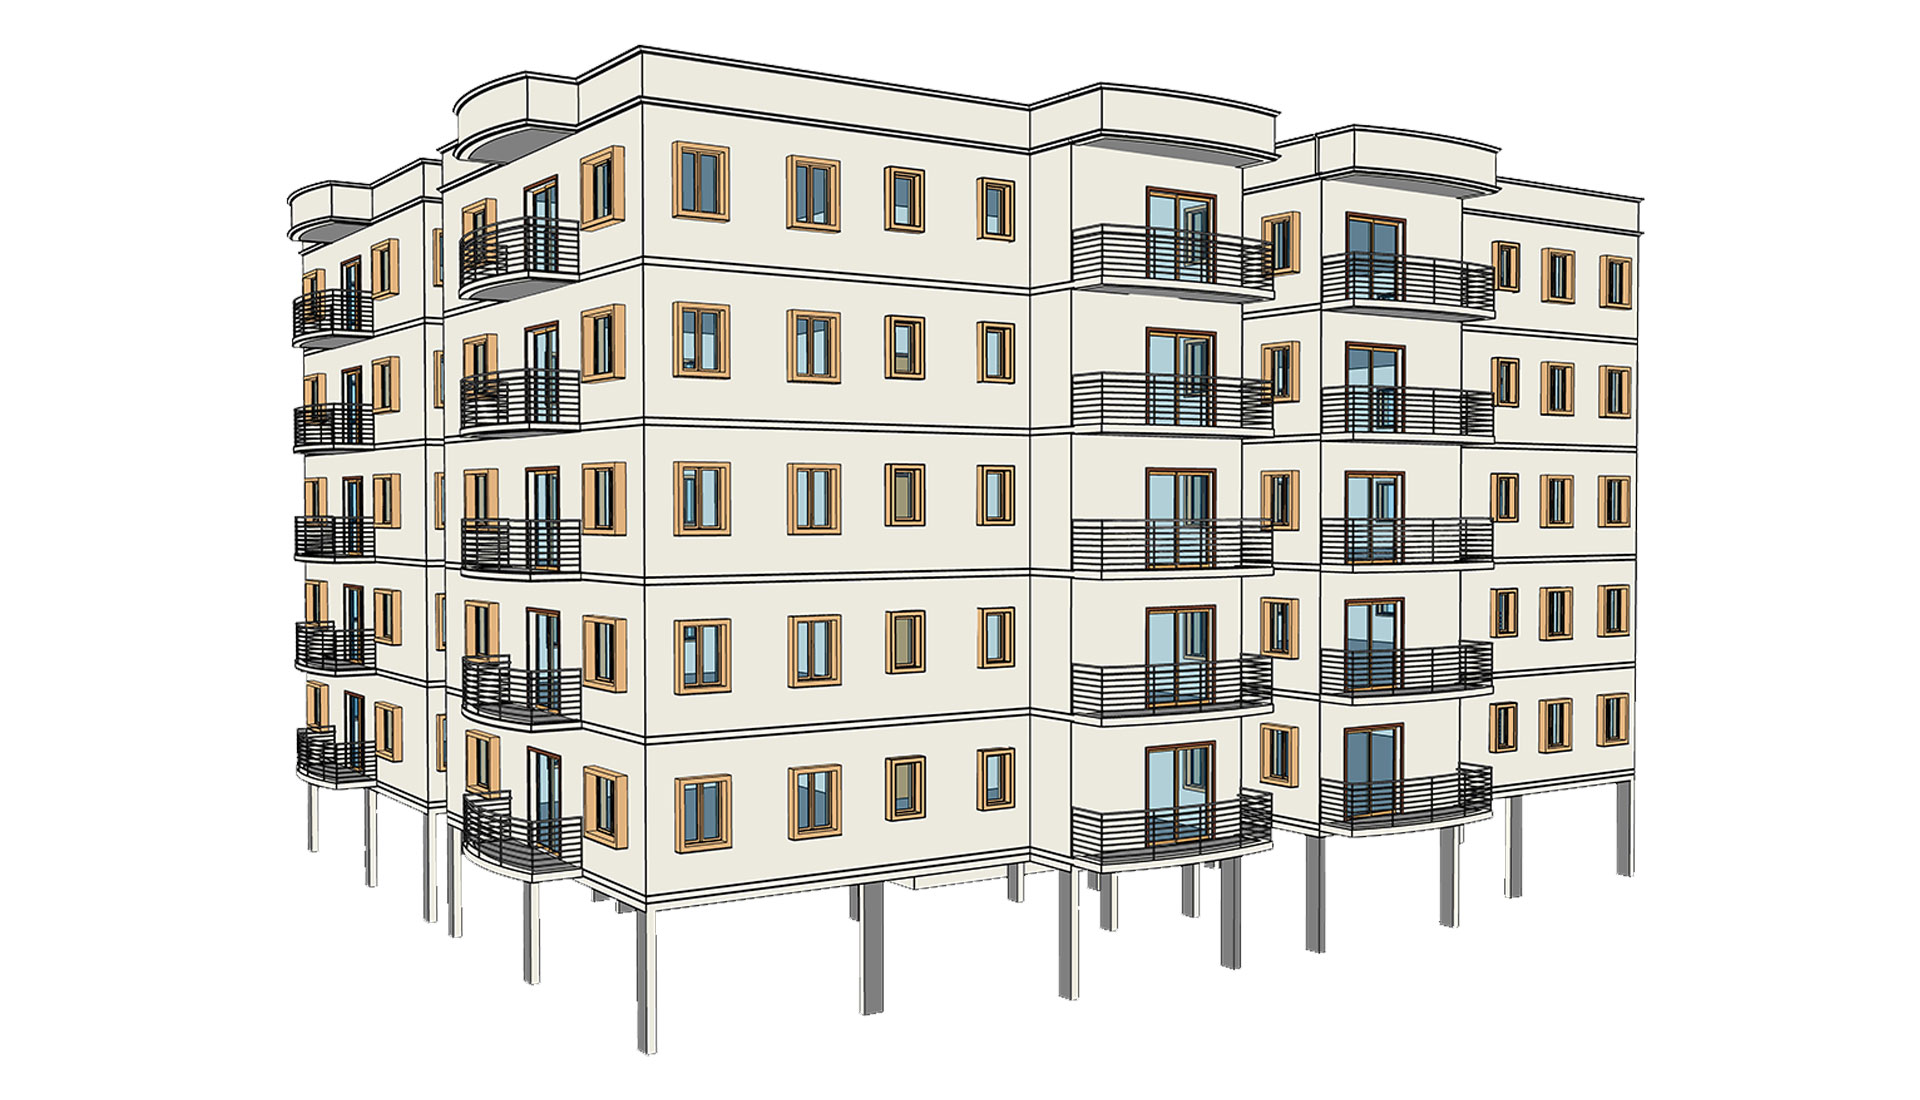 Architectural-Revit-Model_Multi-Residential-Apartments_BIM-Modeling-Project-by-United-BIM